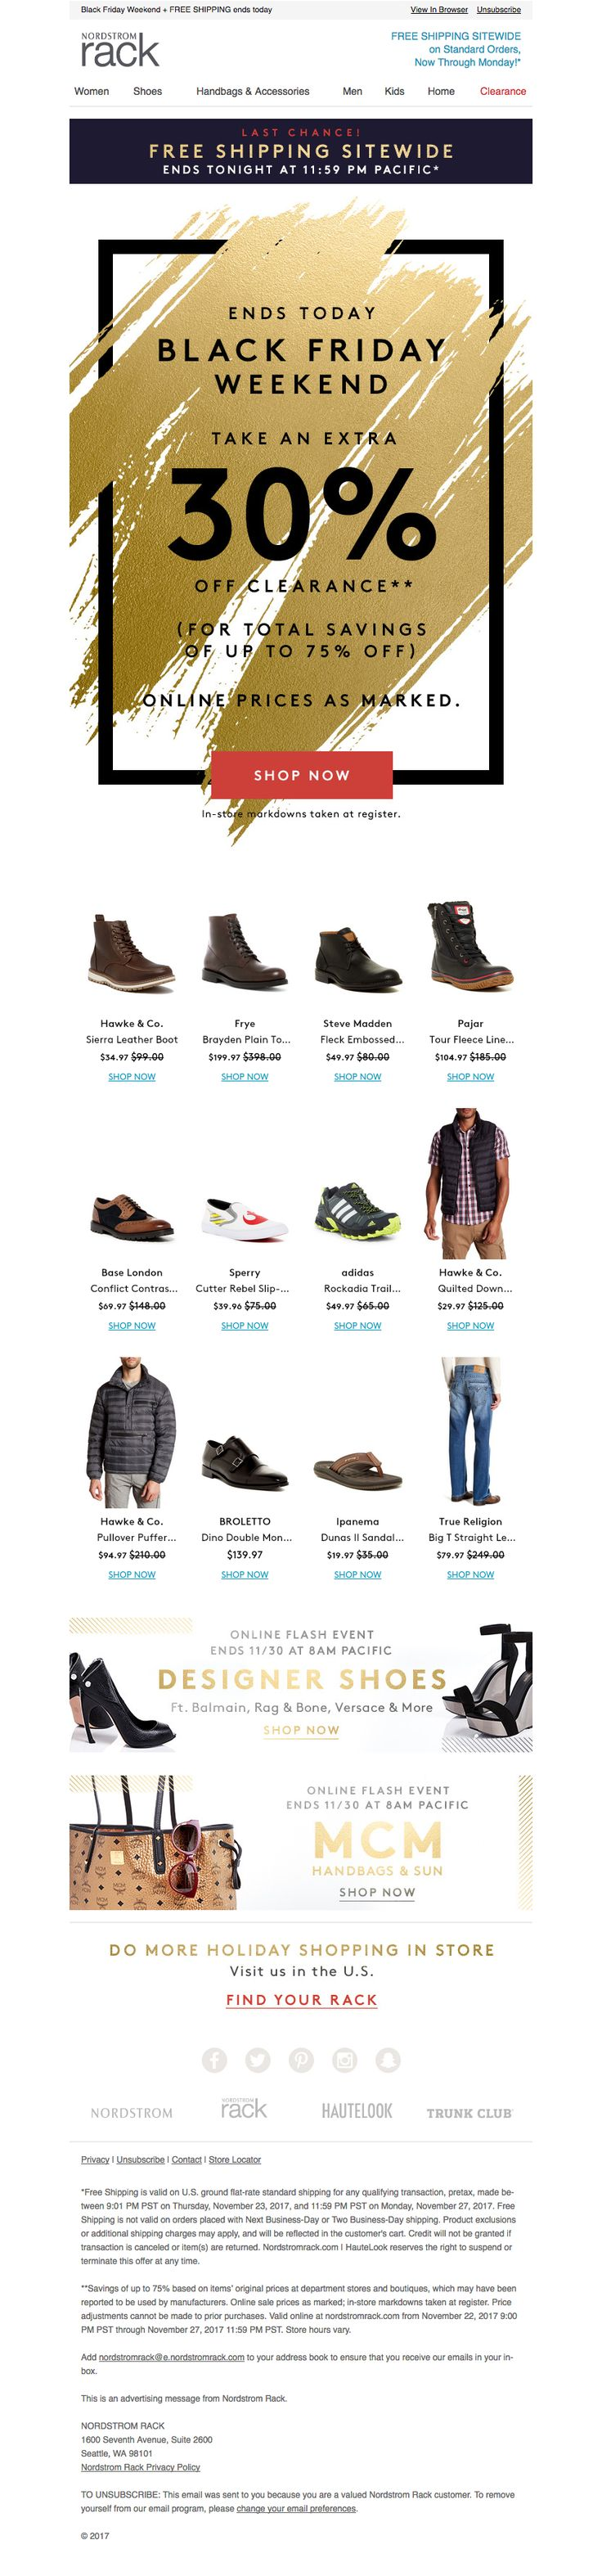 Nordstrom Rack: Black Friday Weekend